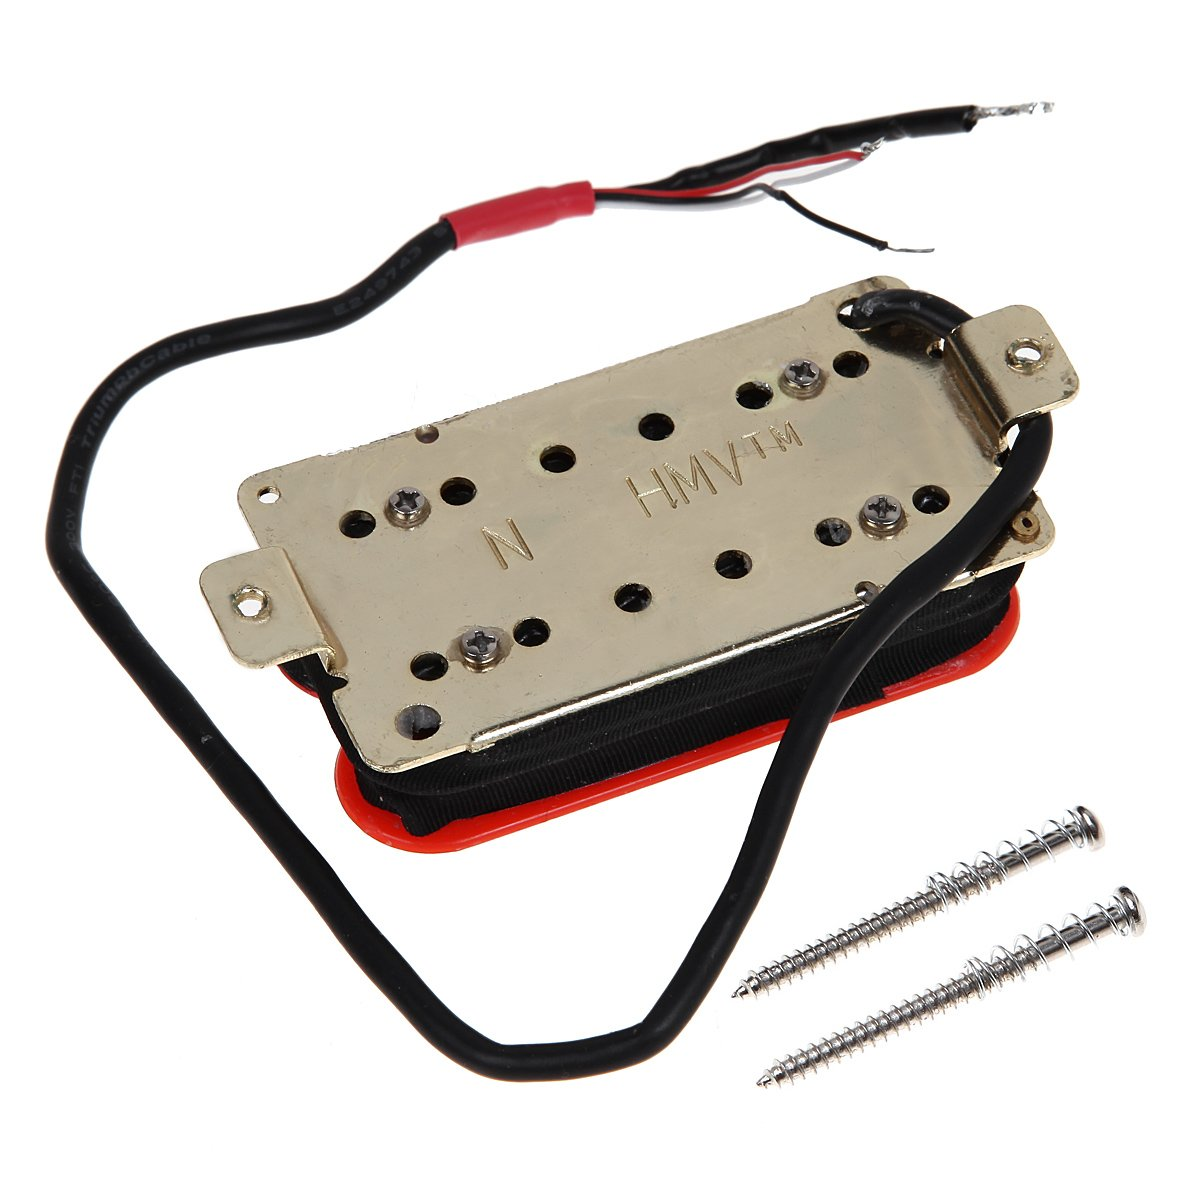 be952e4c70b8 Kmise MI0343 Bridge Neck Guitar Humbucker Pickup Set Invader Style ...